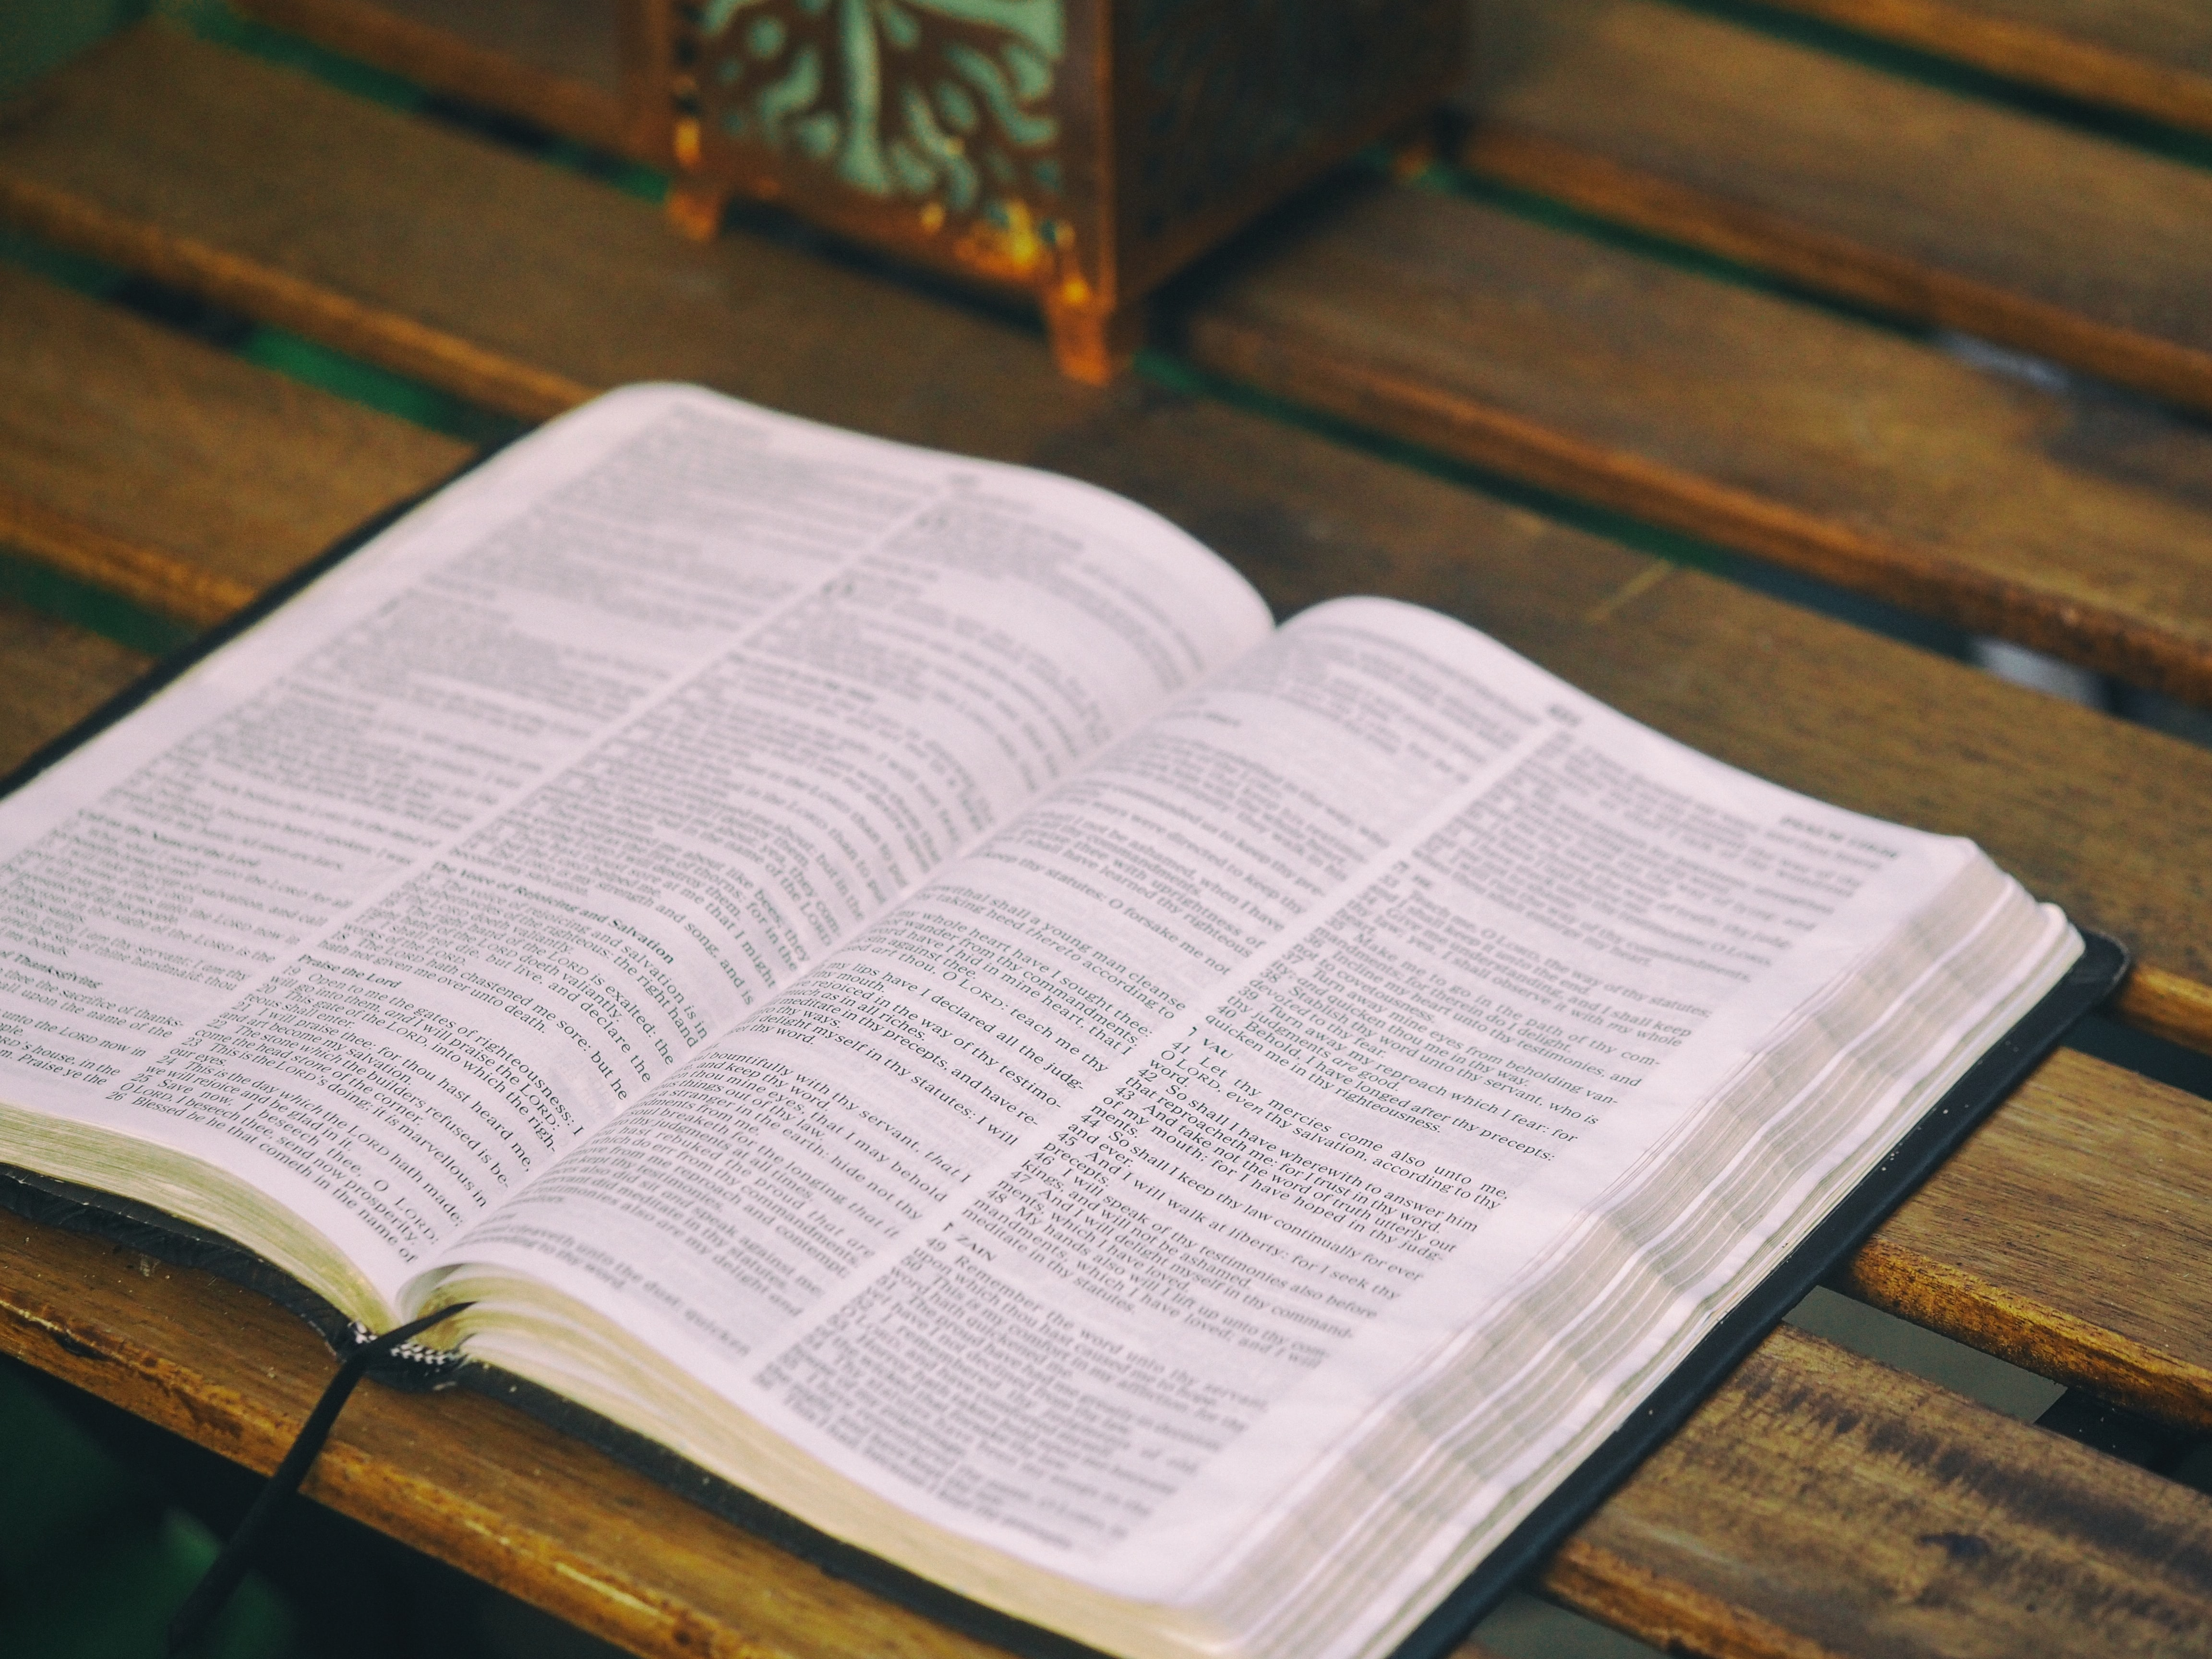 bible opened on table